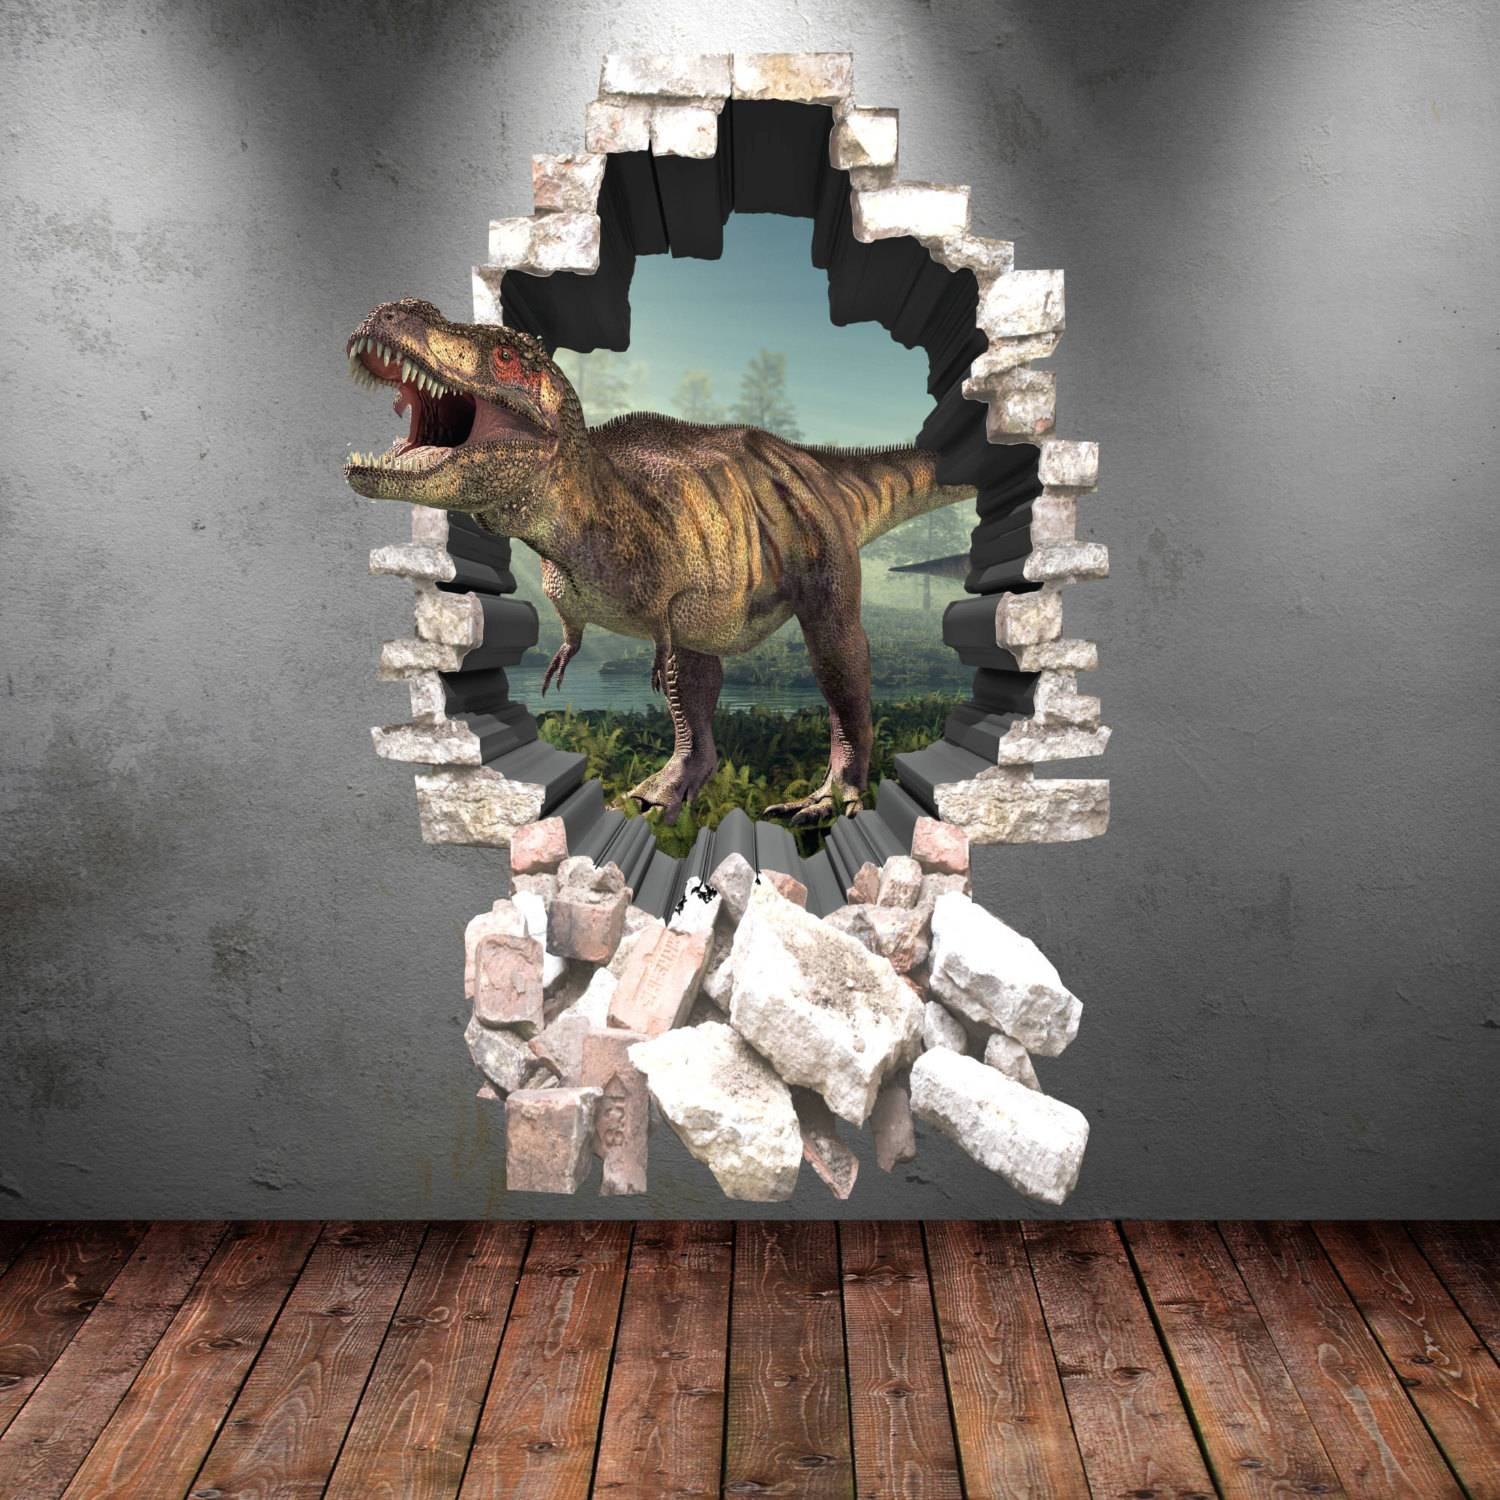 Stunning Design 3d Dinosaur Wall Art Shining Beetling Stegosaurus Regarding Current 3d Dinosaur Wall Art Decor (View 10 of 20)